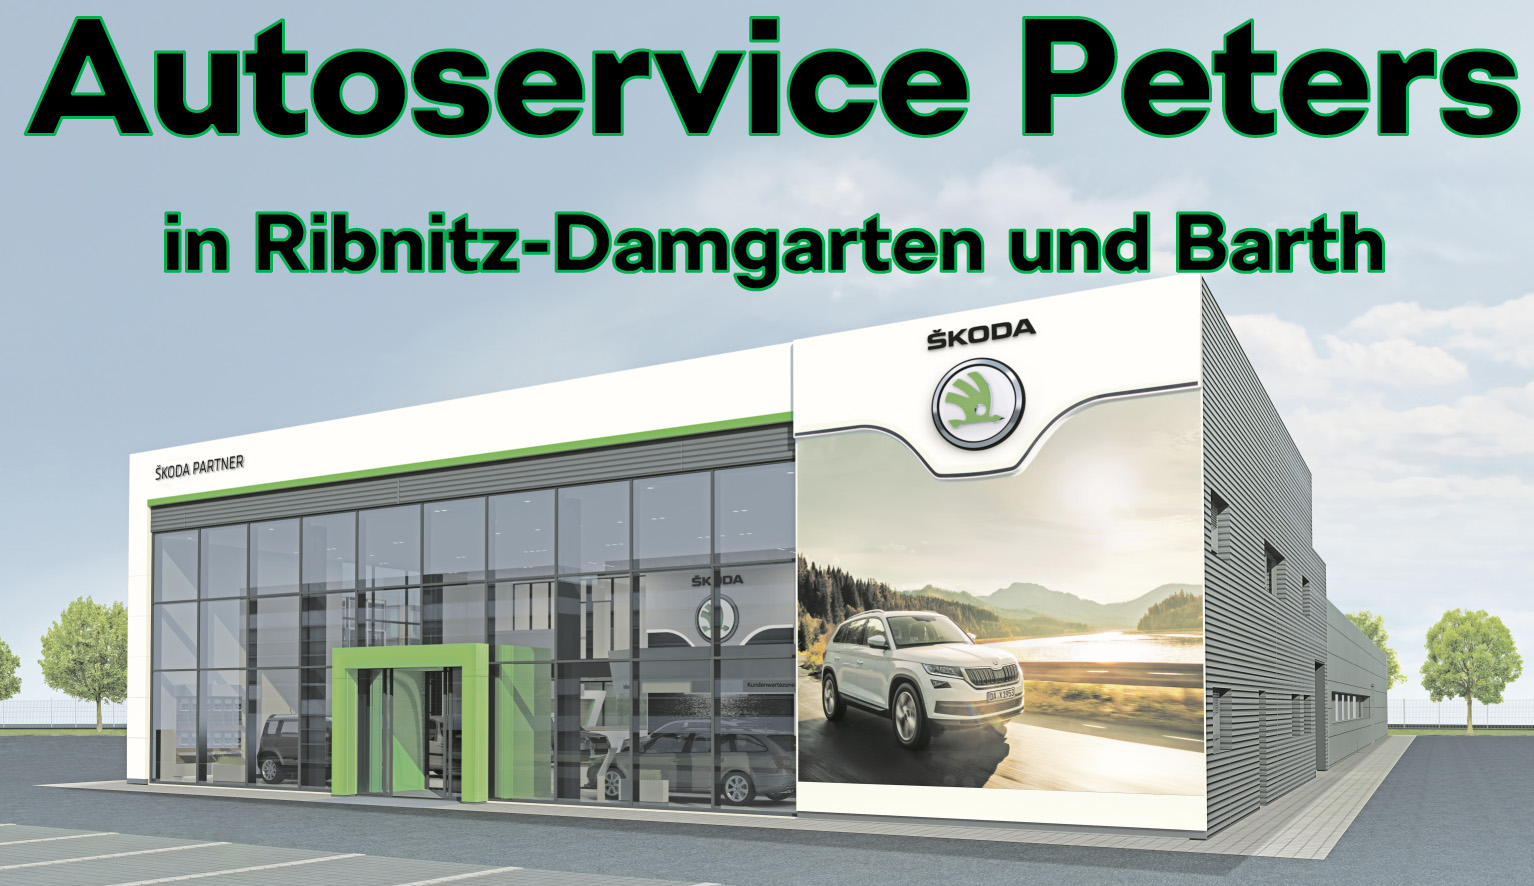 Autoservice Peters GmbH